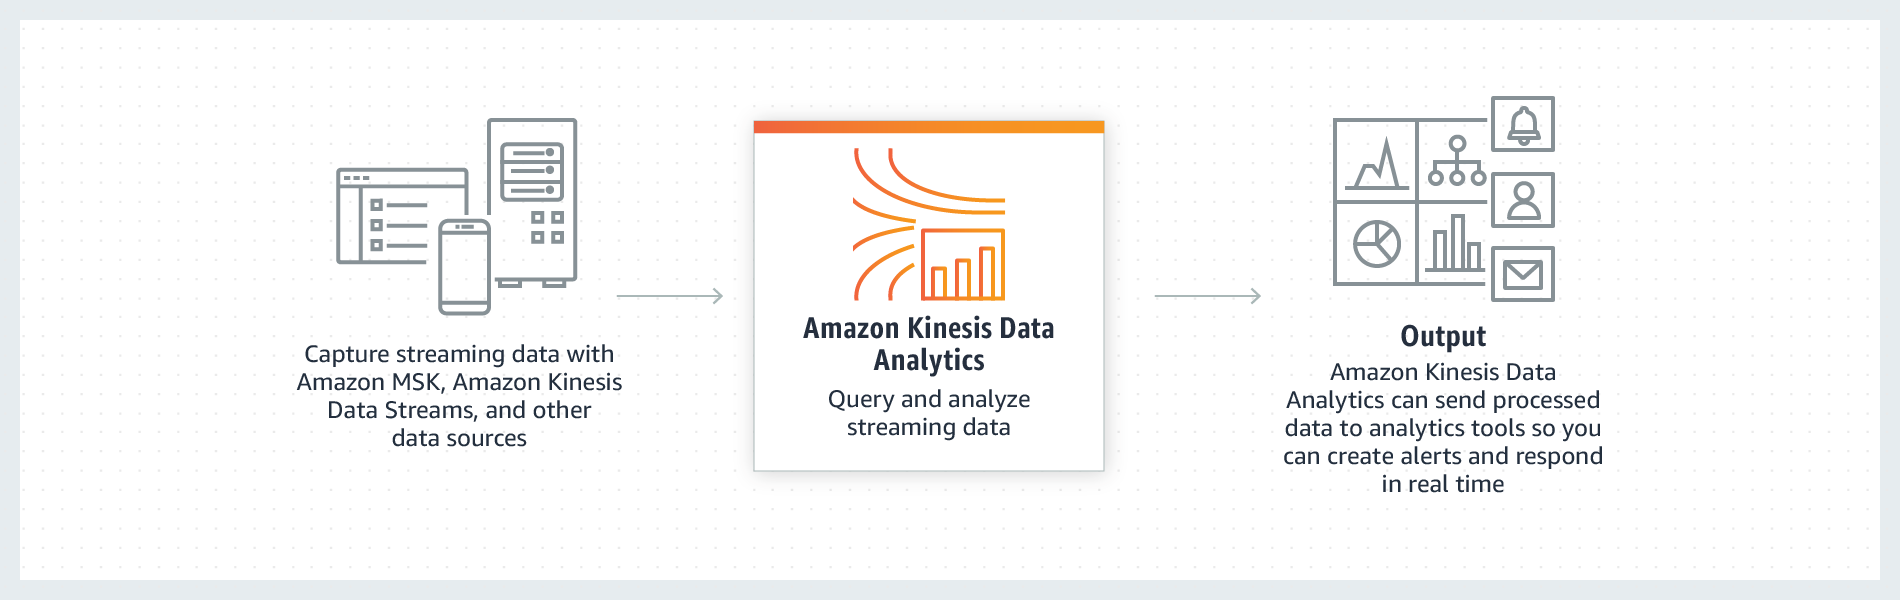 Amazon Kinesis Data Analytics